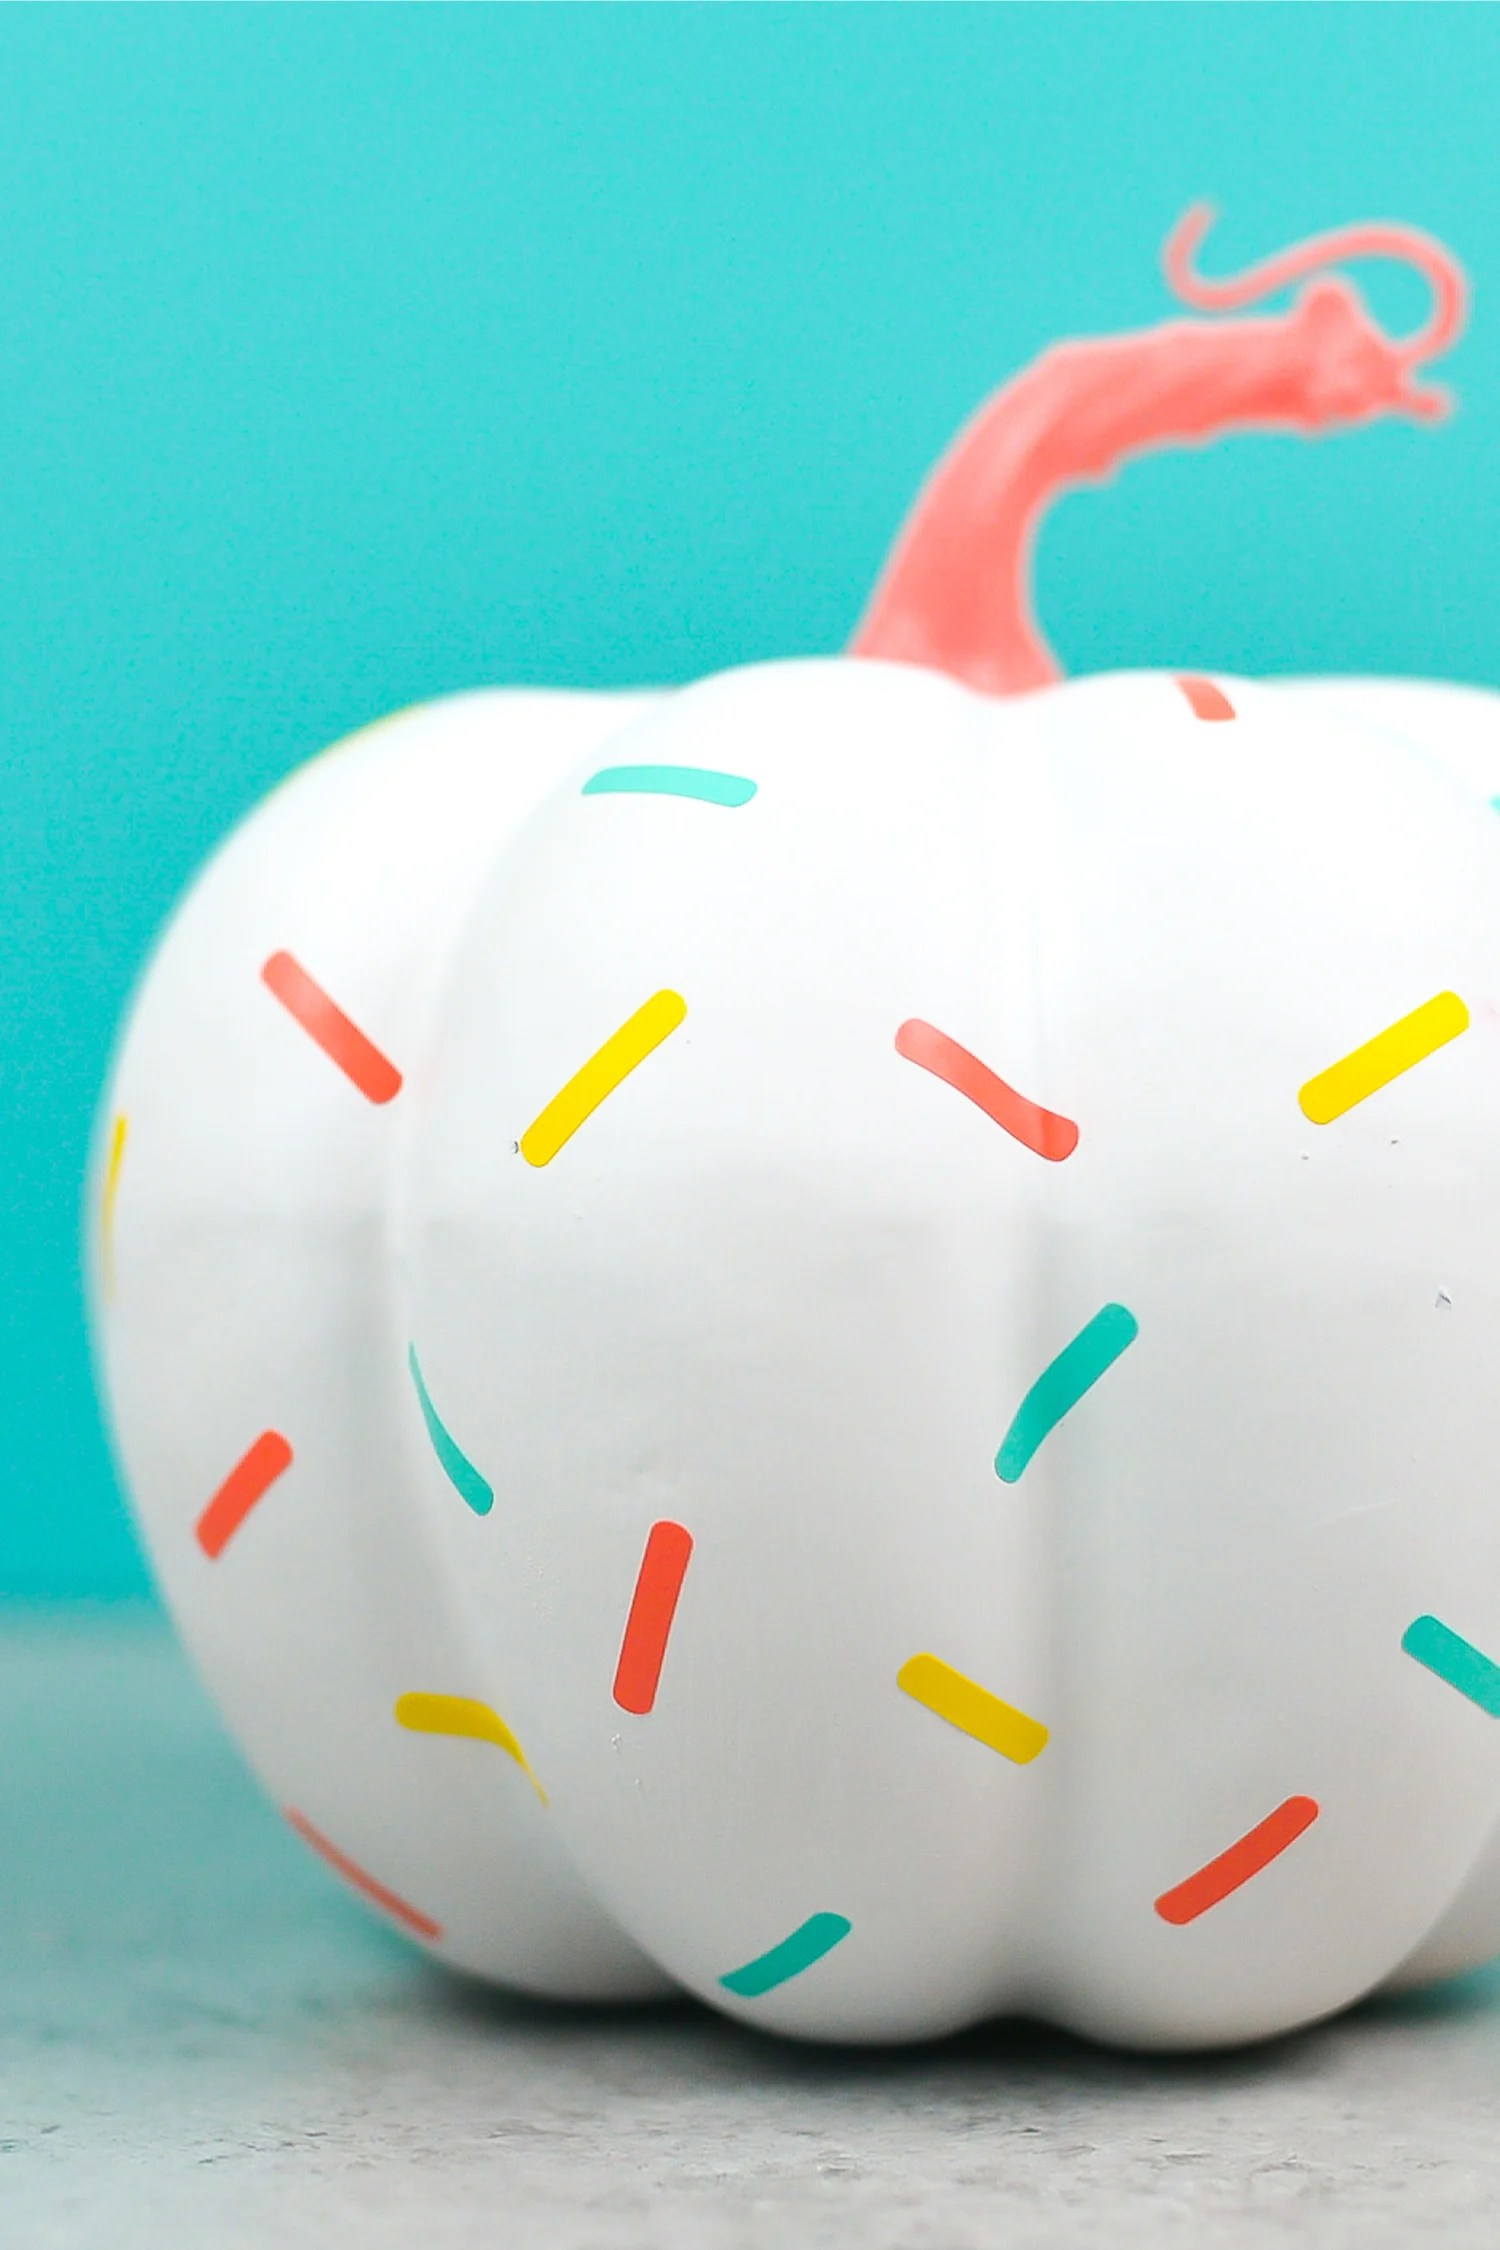 Halloween doesn't have to be scary! This adorable sprinkle DIY pumpkin is a cute addition to your Halloween party decor. Whip it up in less than 15 minutes using vinyl sprinkles cut on your Cricut!